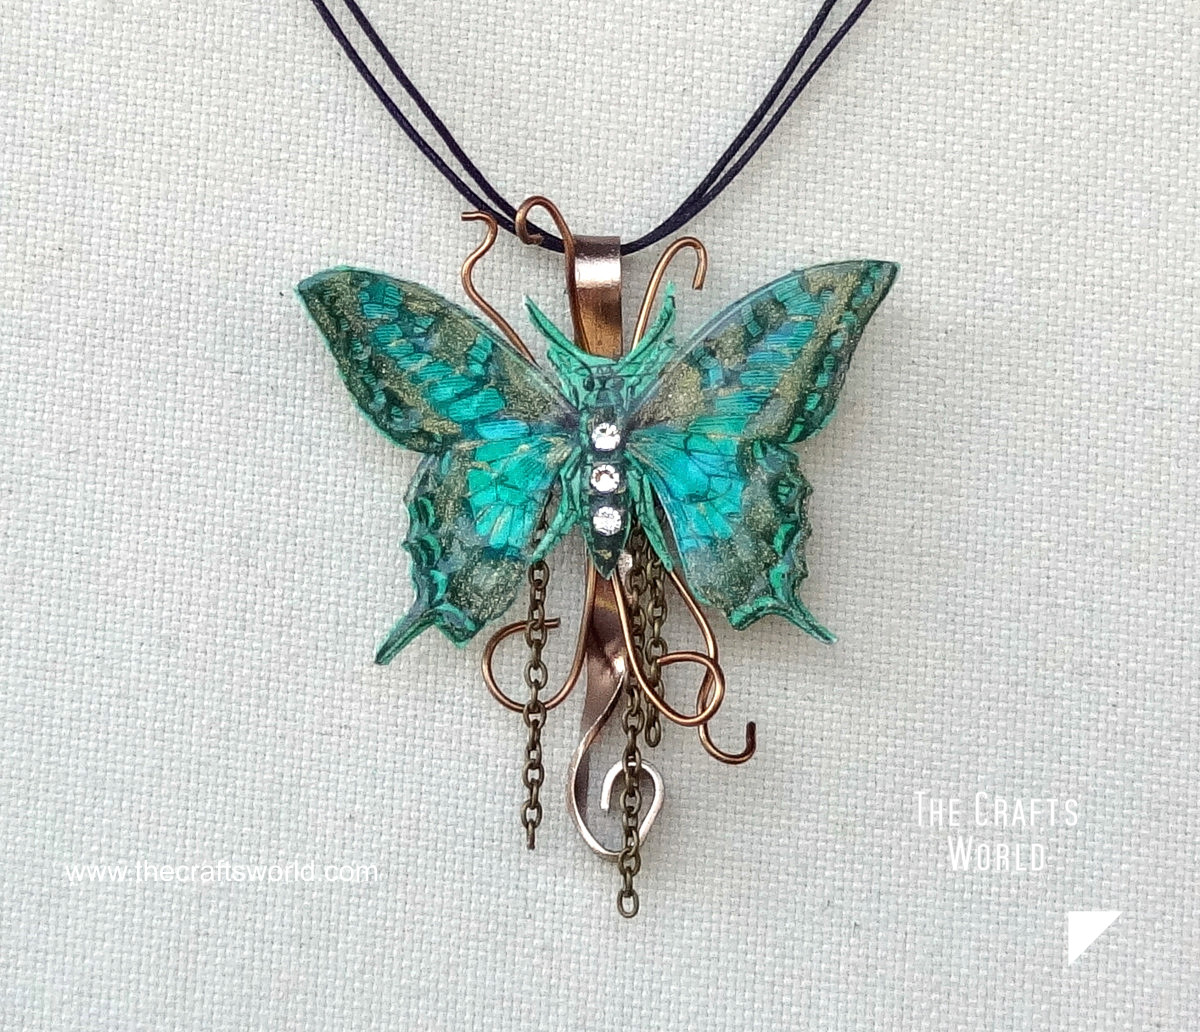 Butterfly pendant - close